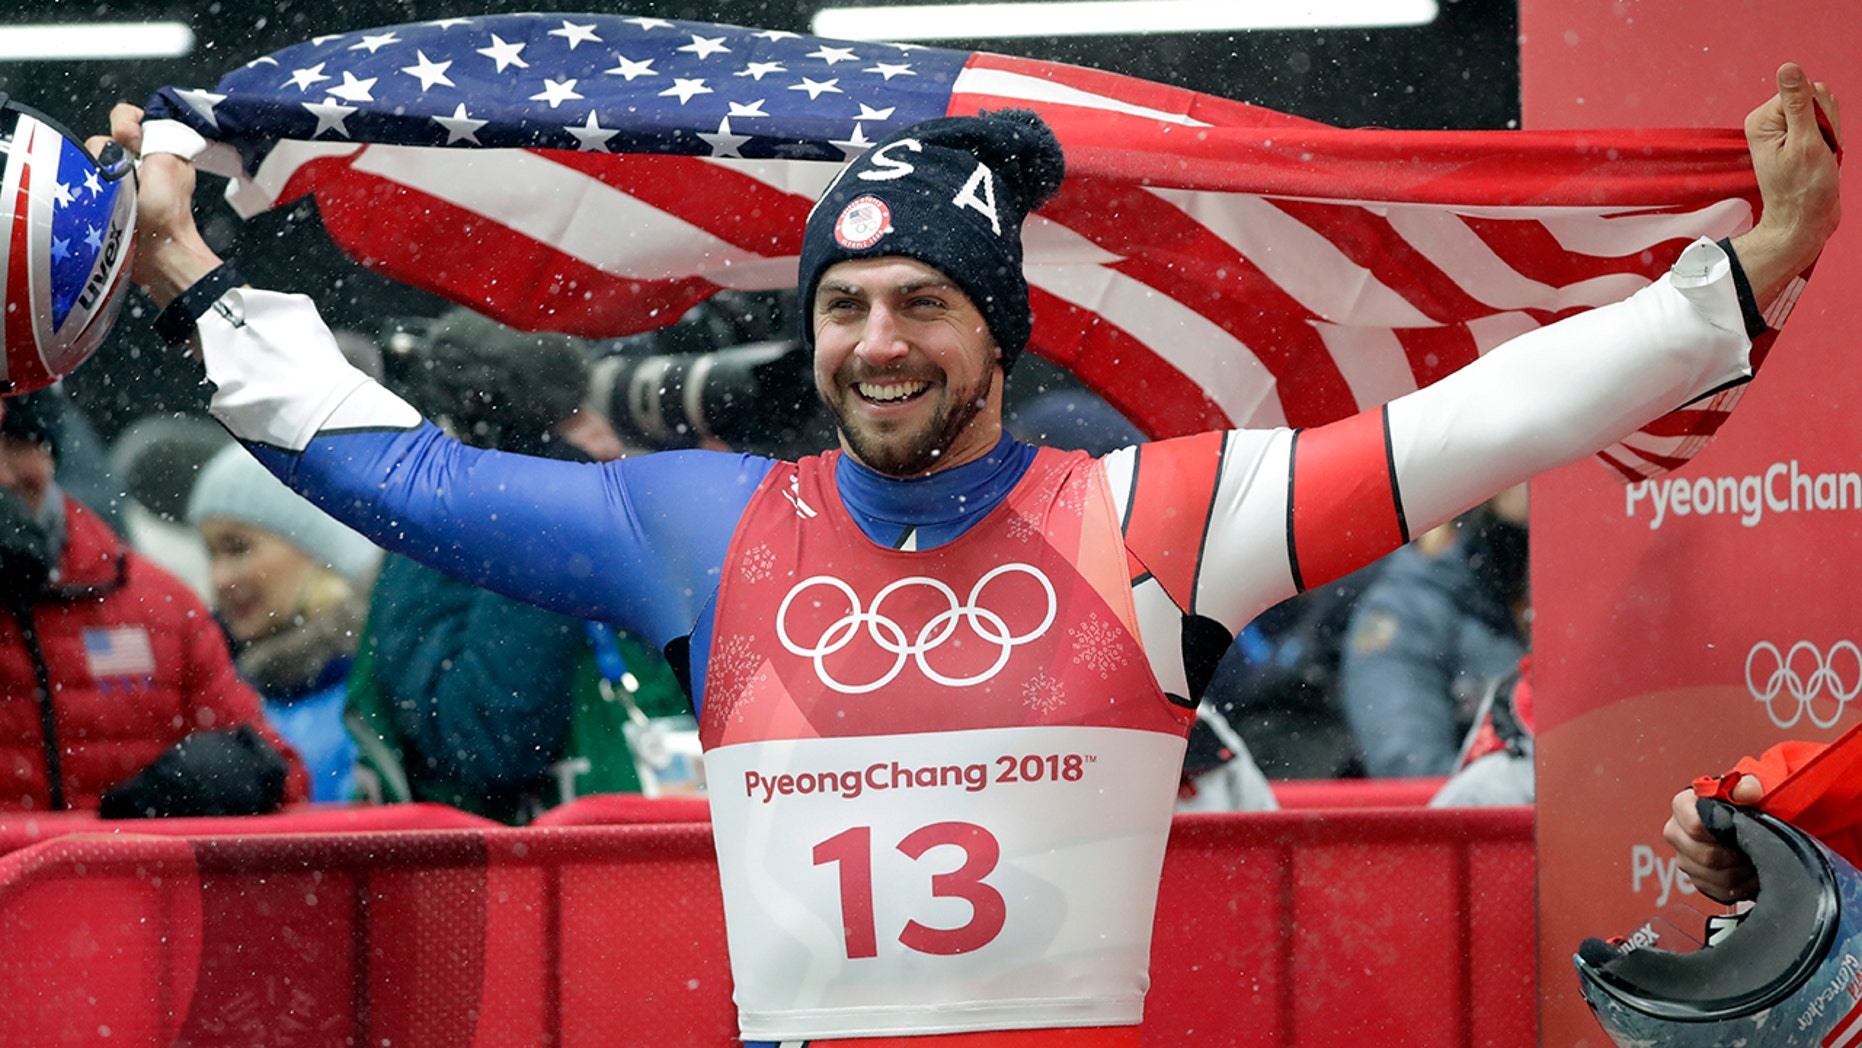 American Chris Mazdzer celebrates his historic silver medal win by eating a slice of pizza in one bite.